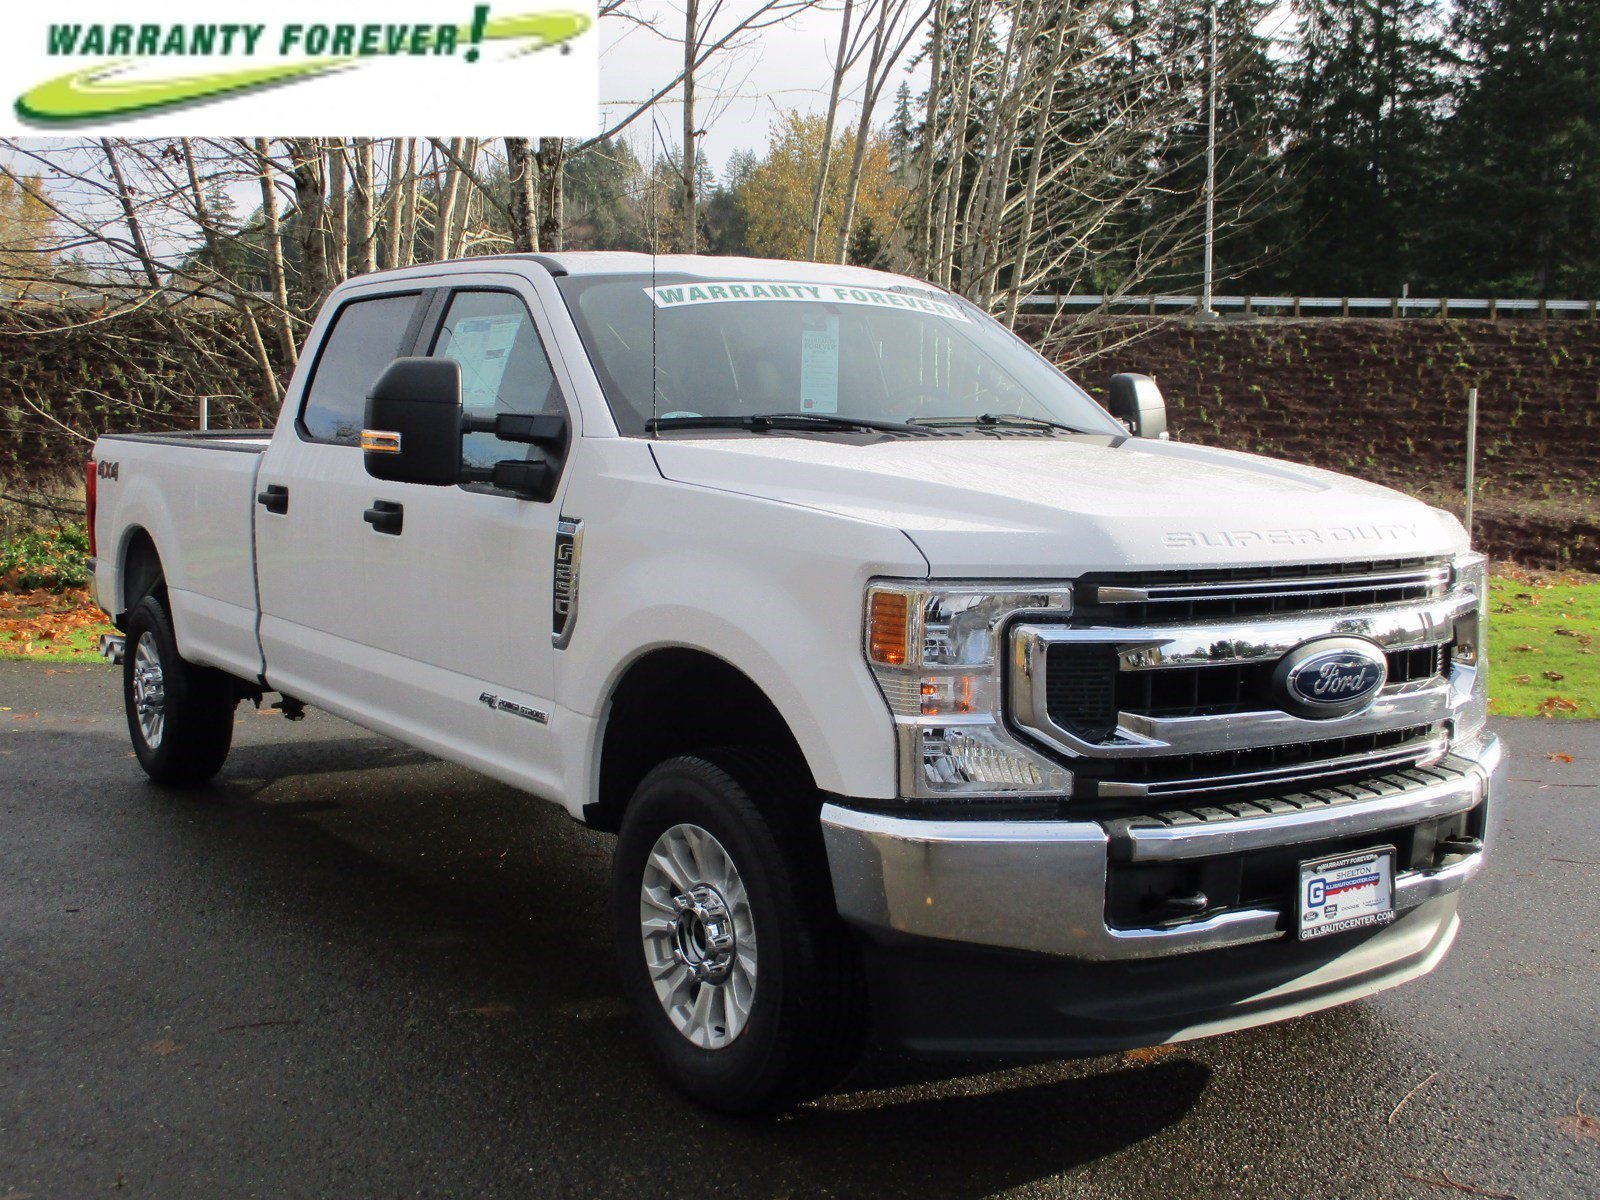 New-2020-Ford-Super-Duty-F-250-SRW-XL-4WD-Crew-Cab-8'-Box